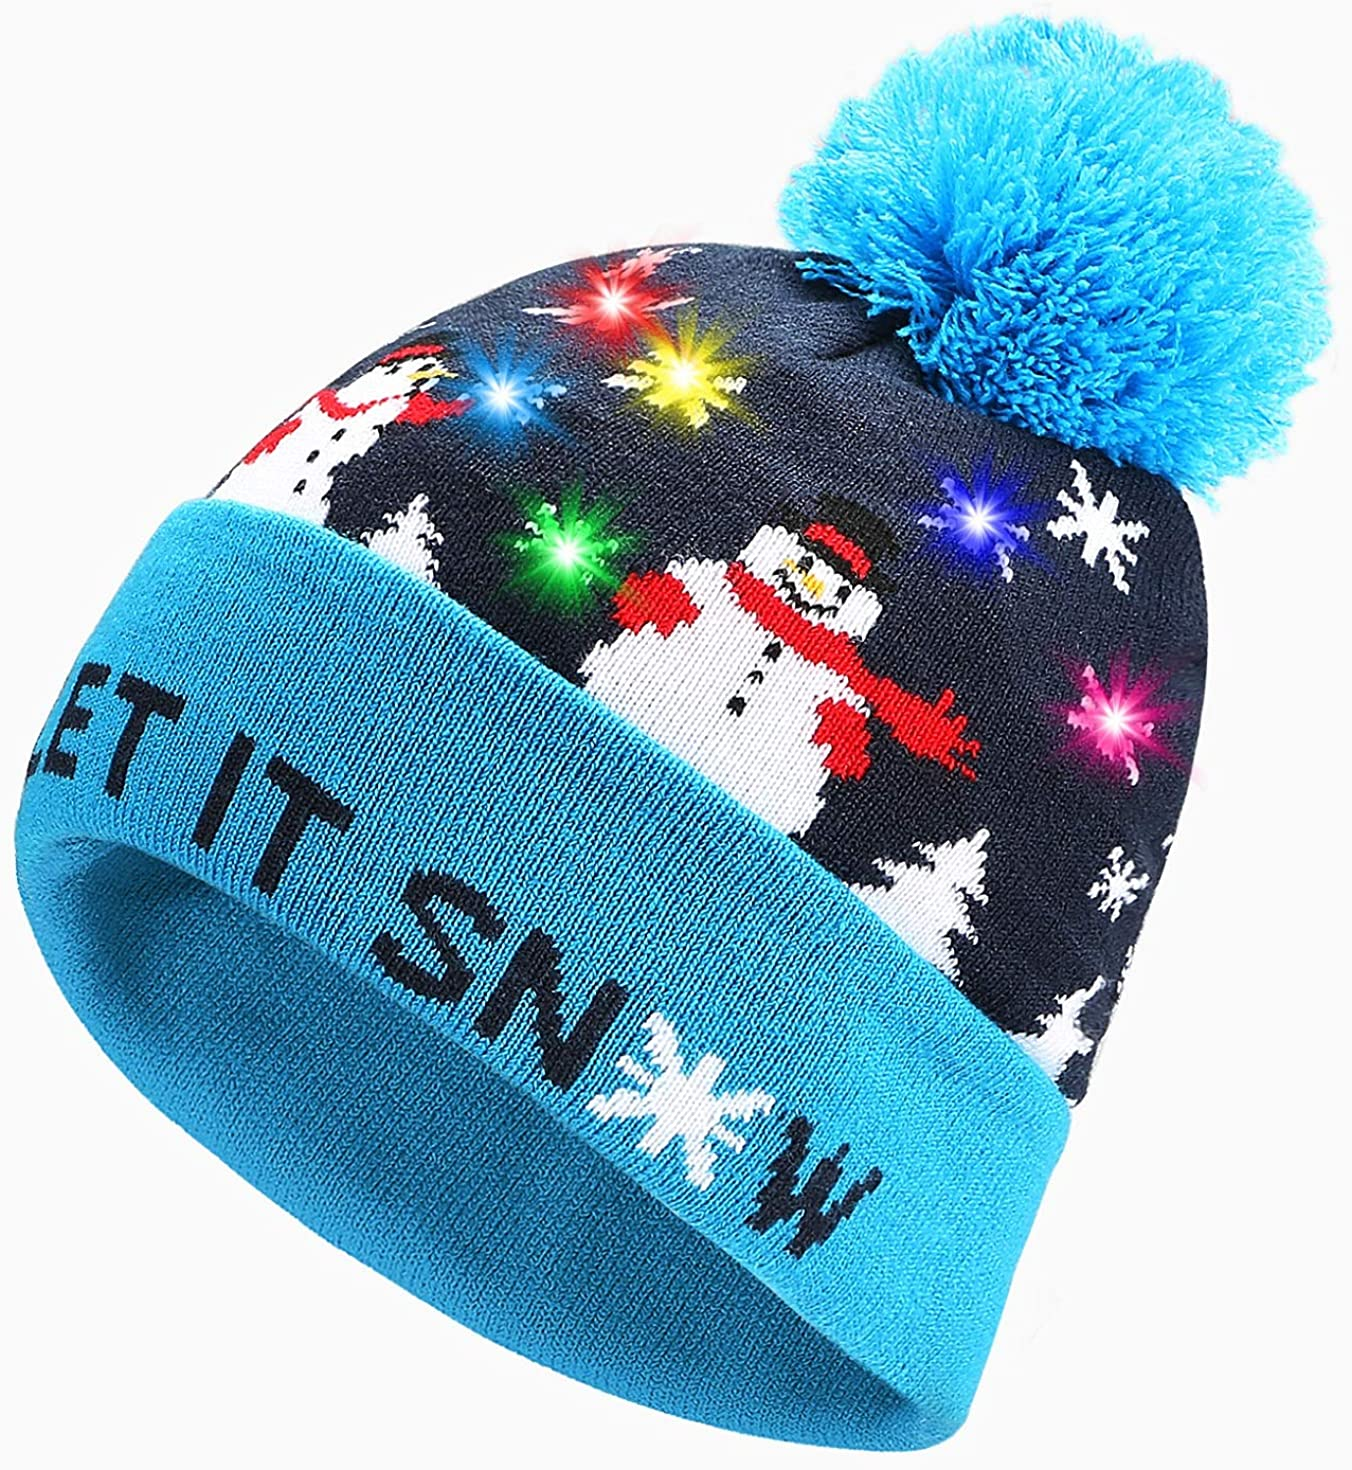 Eaterhom LED Light Up Beanie Hat Knit Cap Led Beanie for Birthday Party